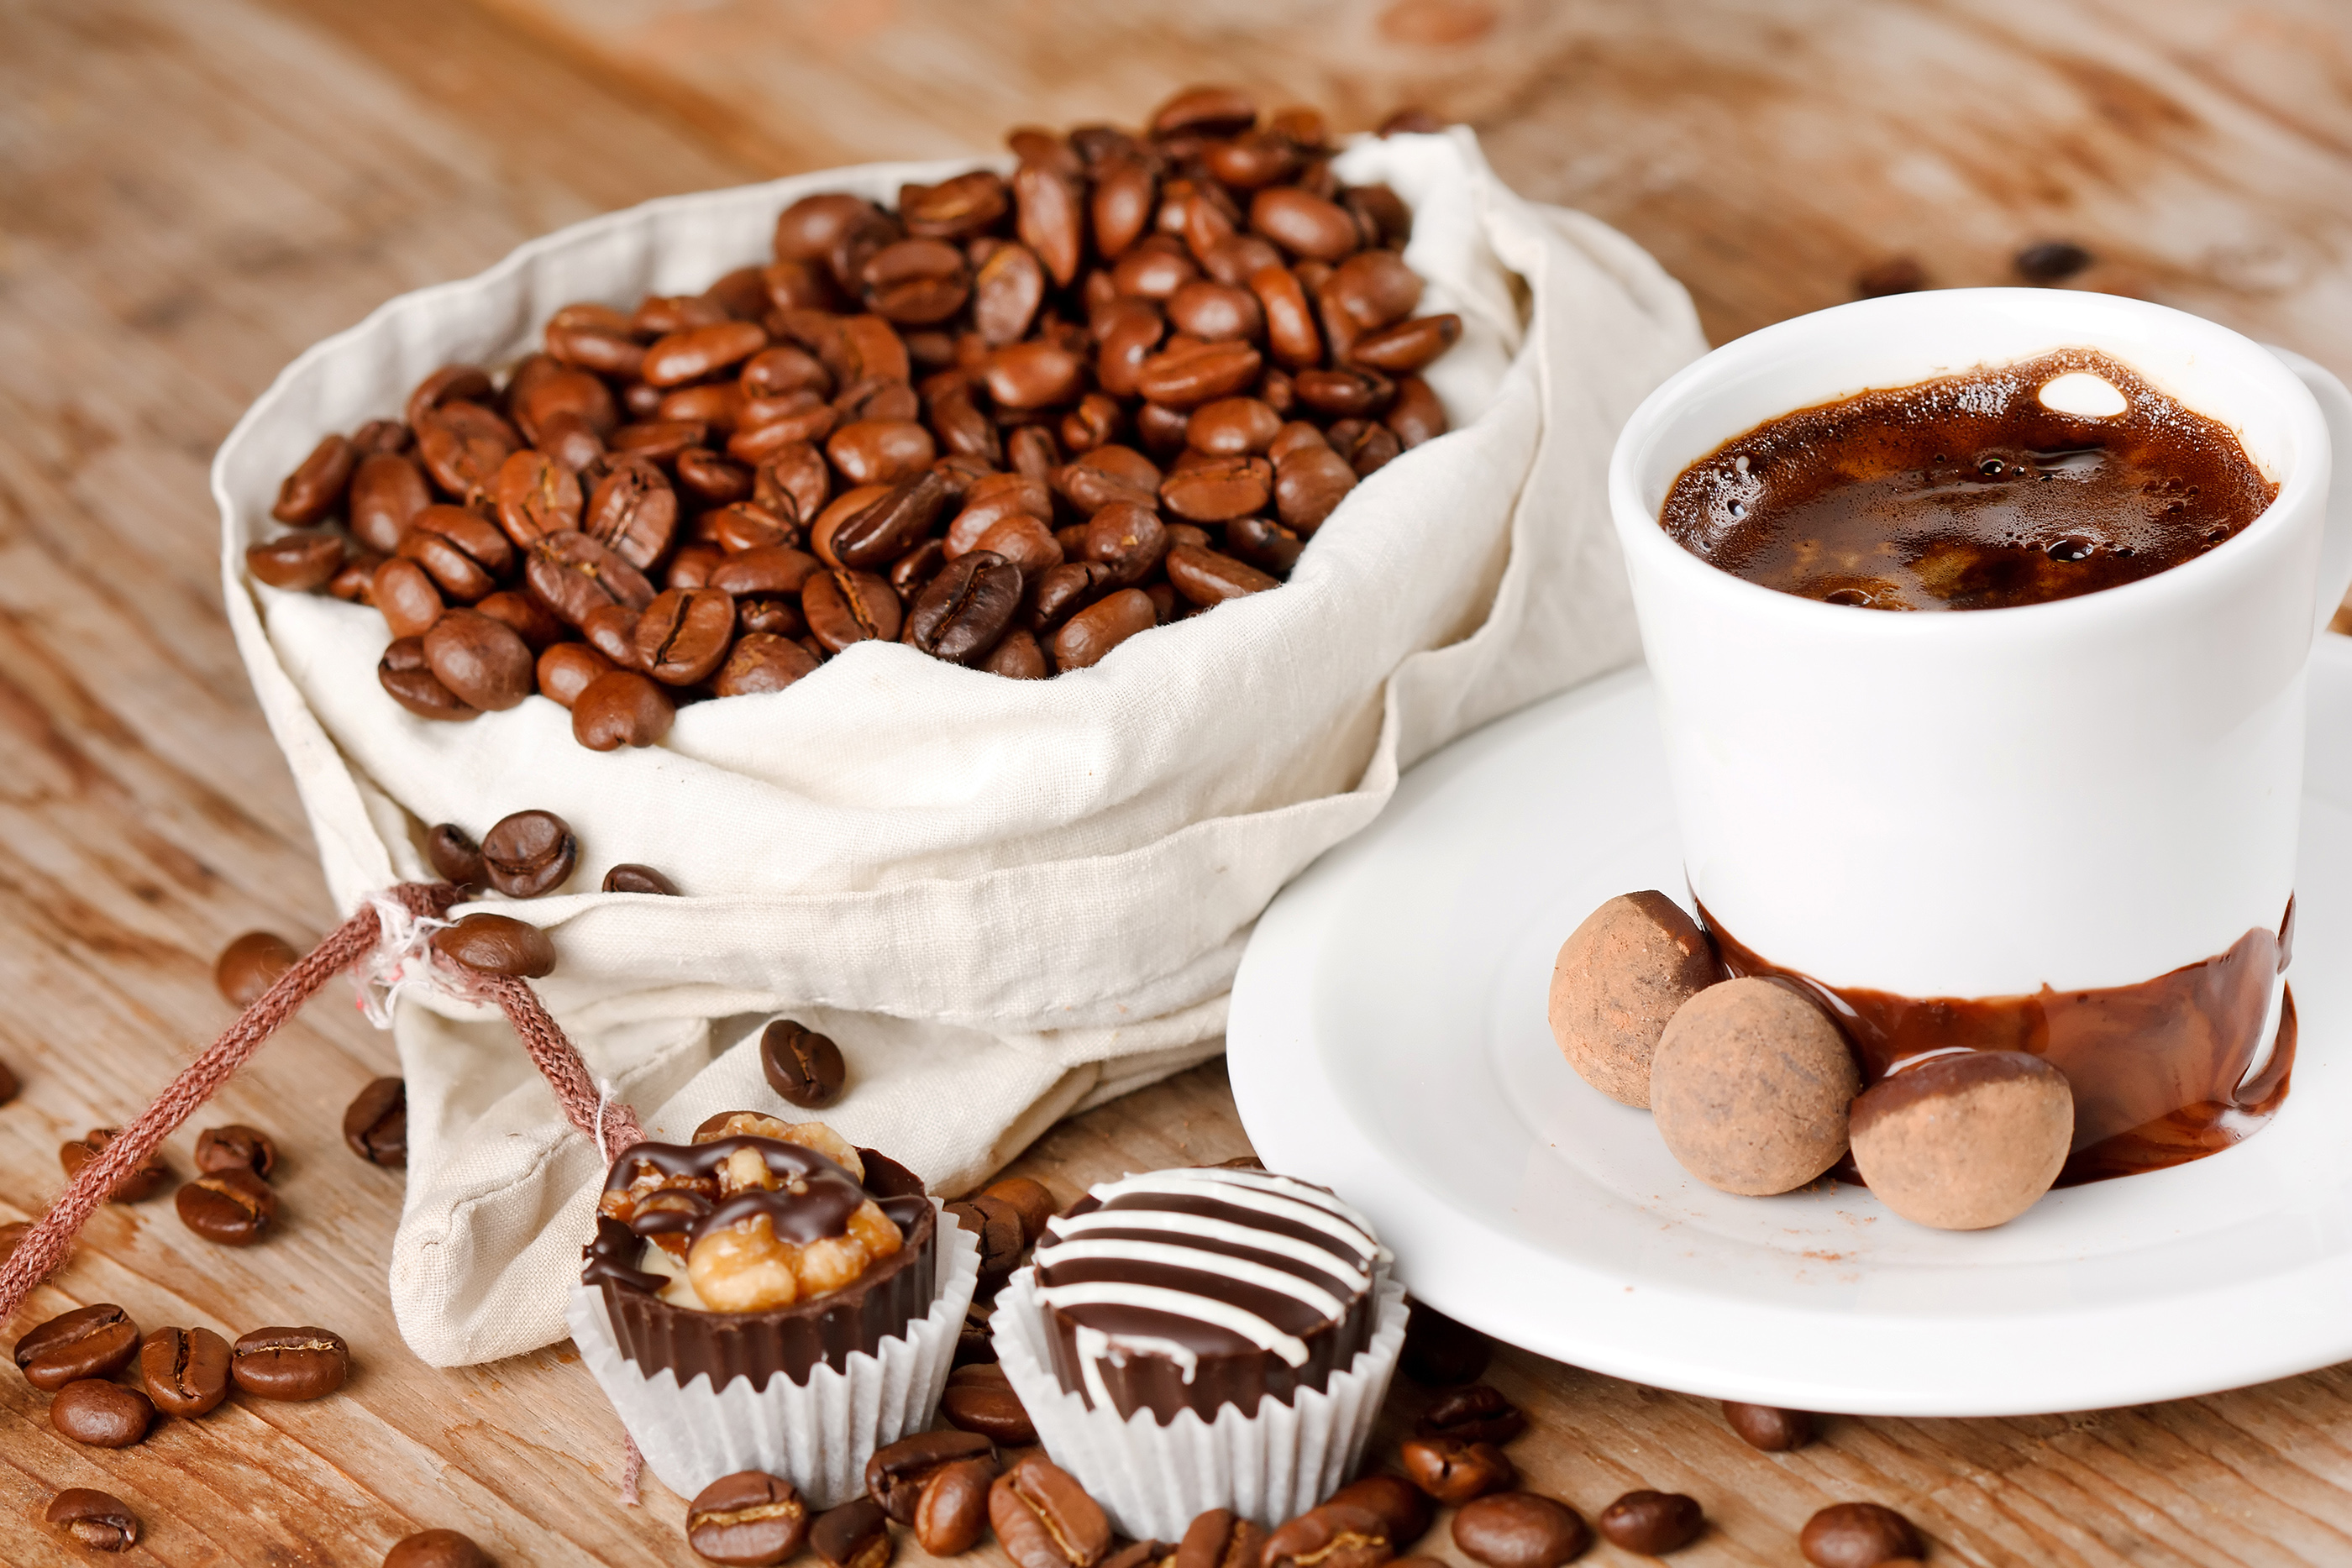 Chocolate with coffee beans 55170